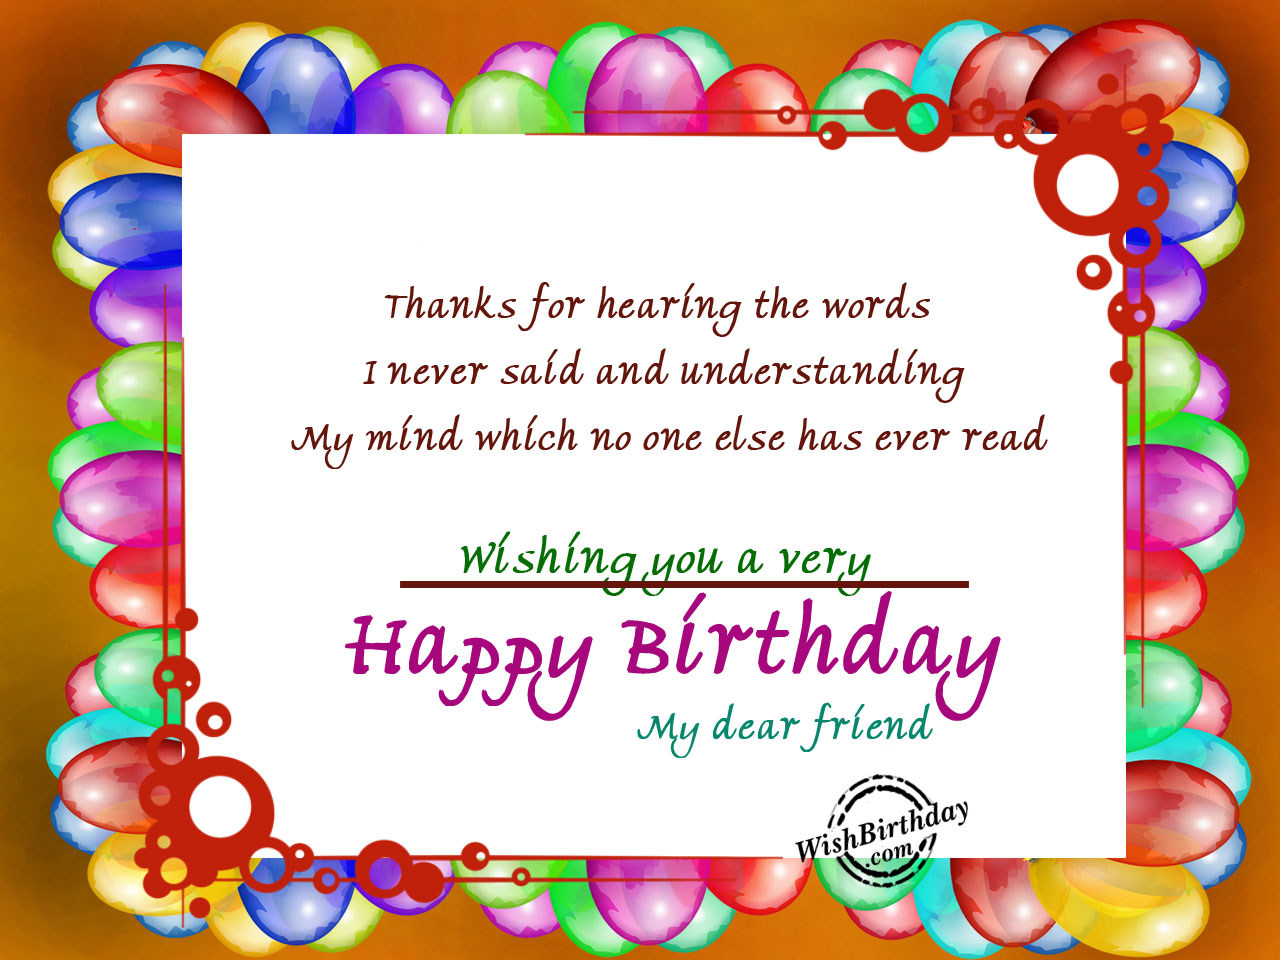 Birthday Wishes For Best Friend - Birthday Images, Pictures